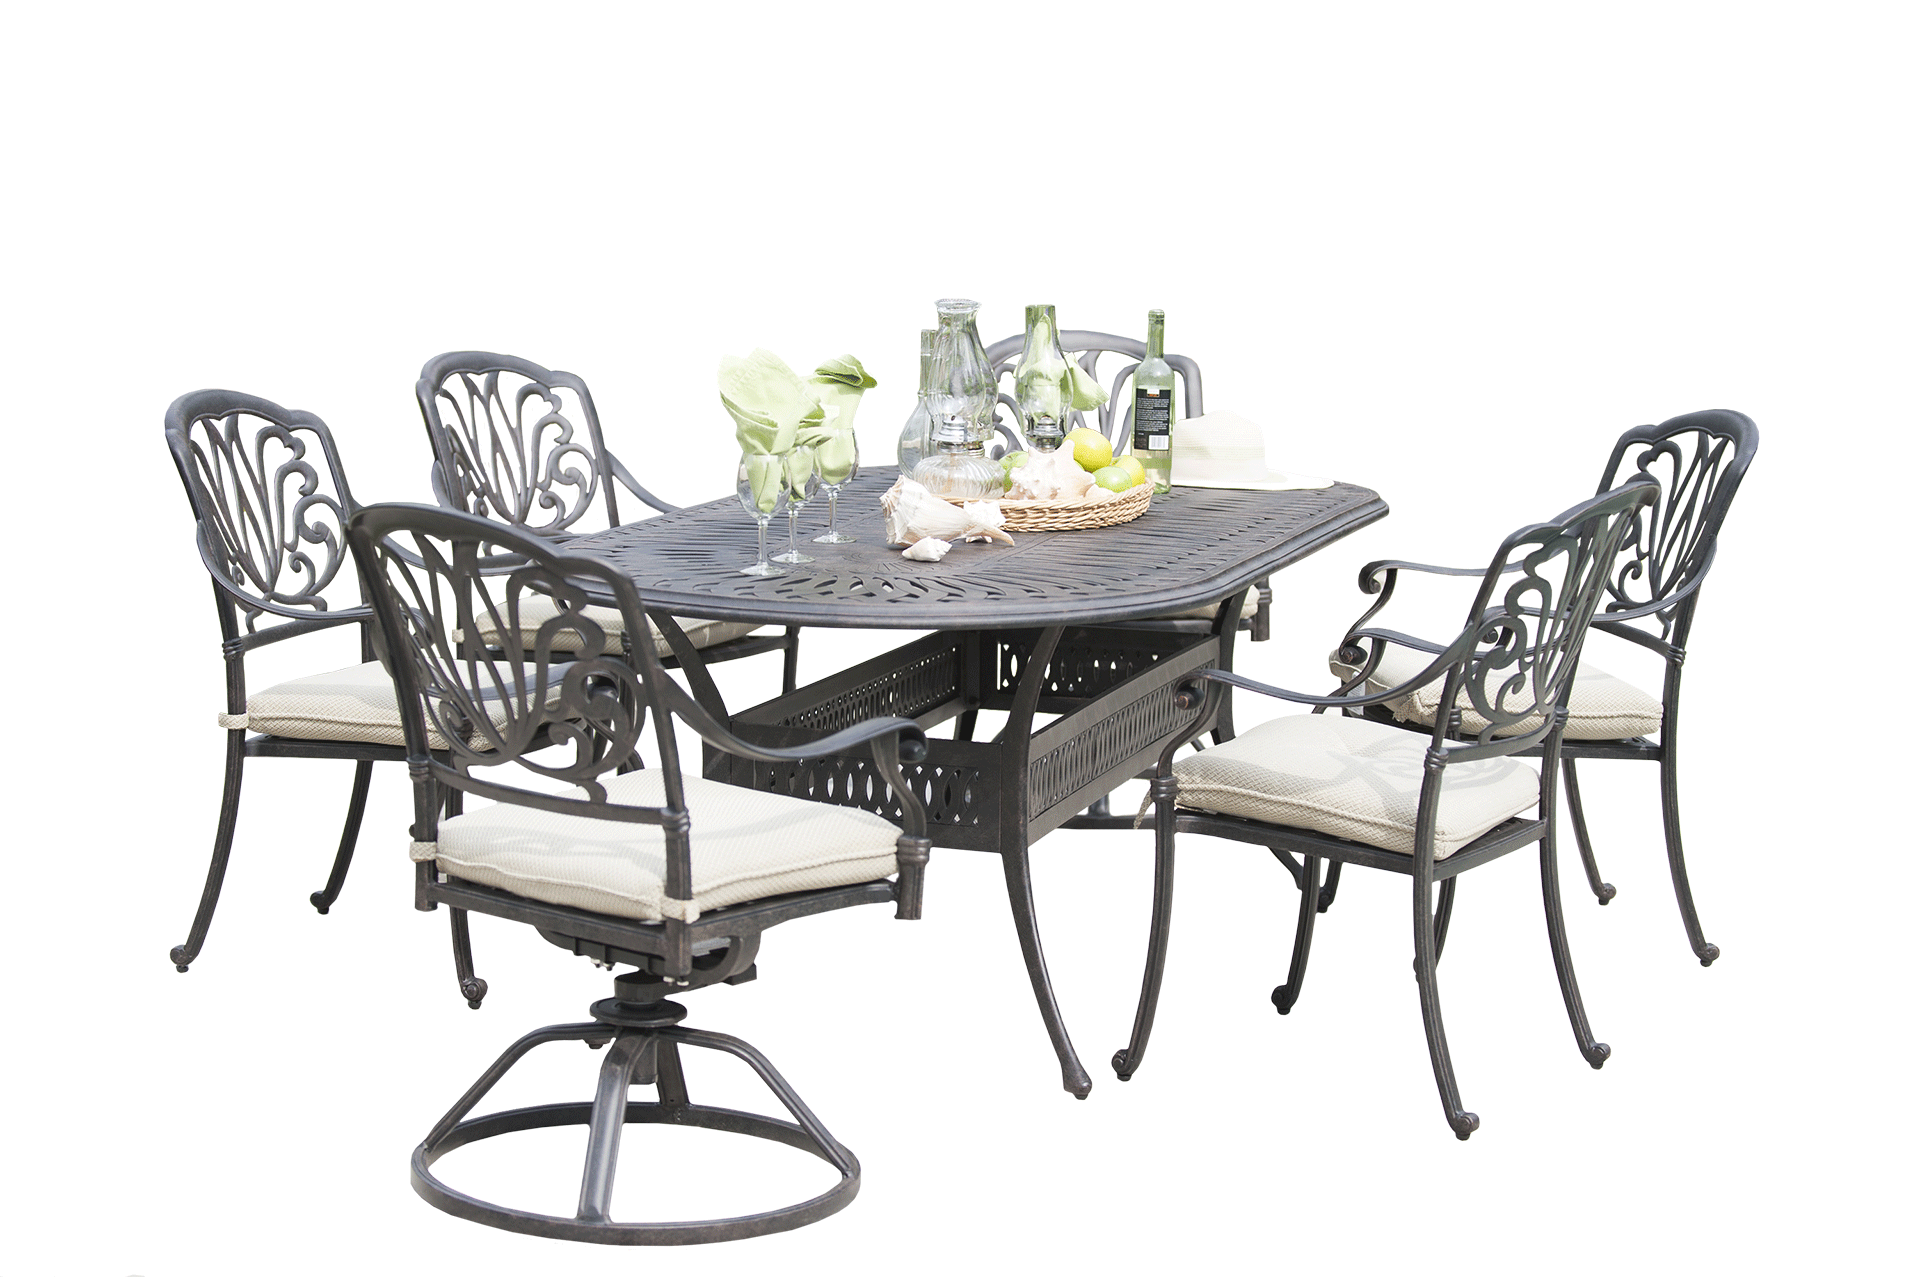 Patio Furniture Kitchener Patio Furniture Products And Outdoor Patio Accessories Pioneer